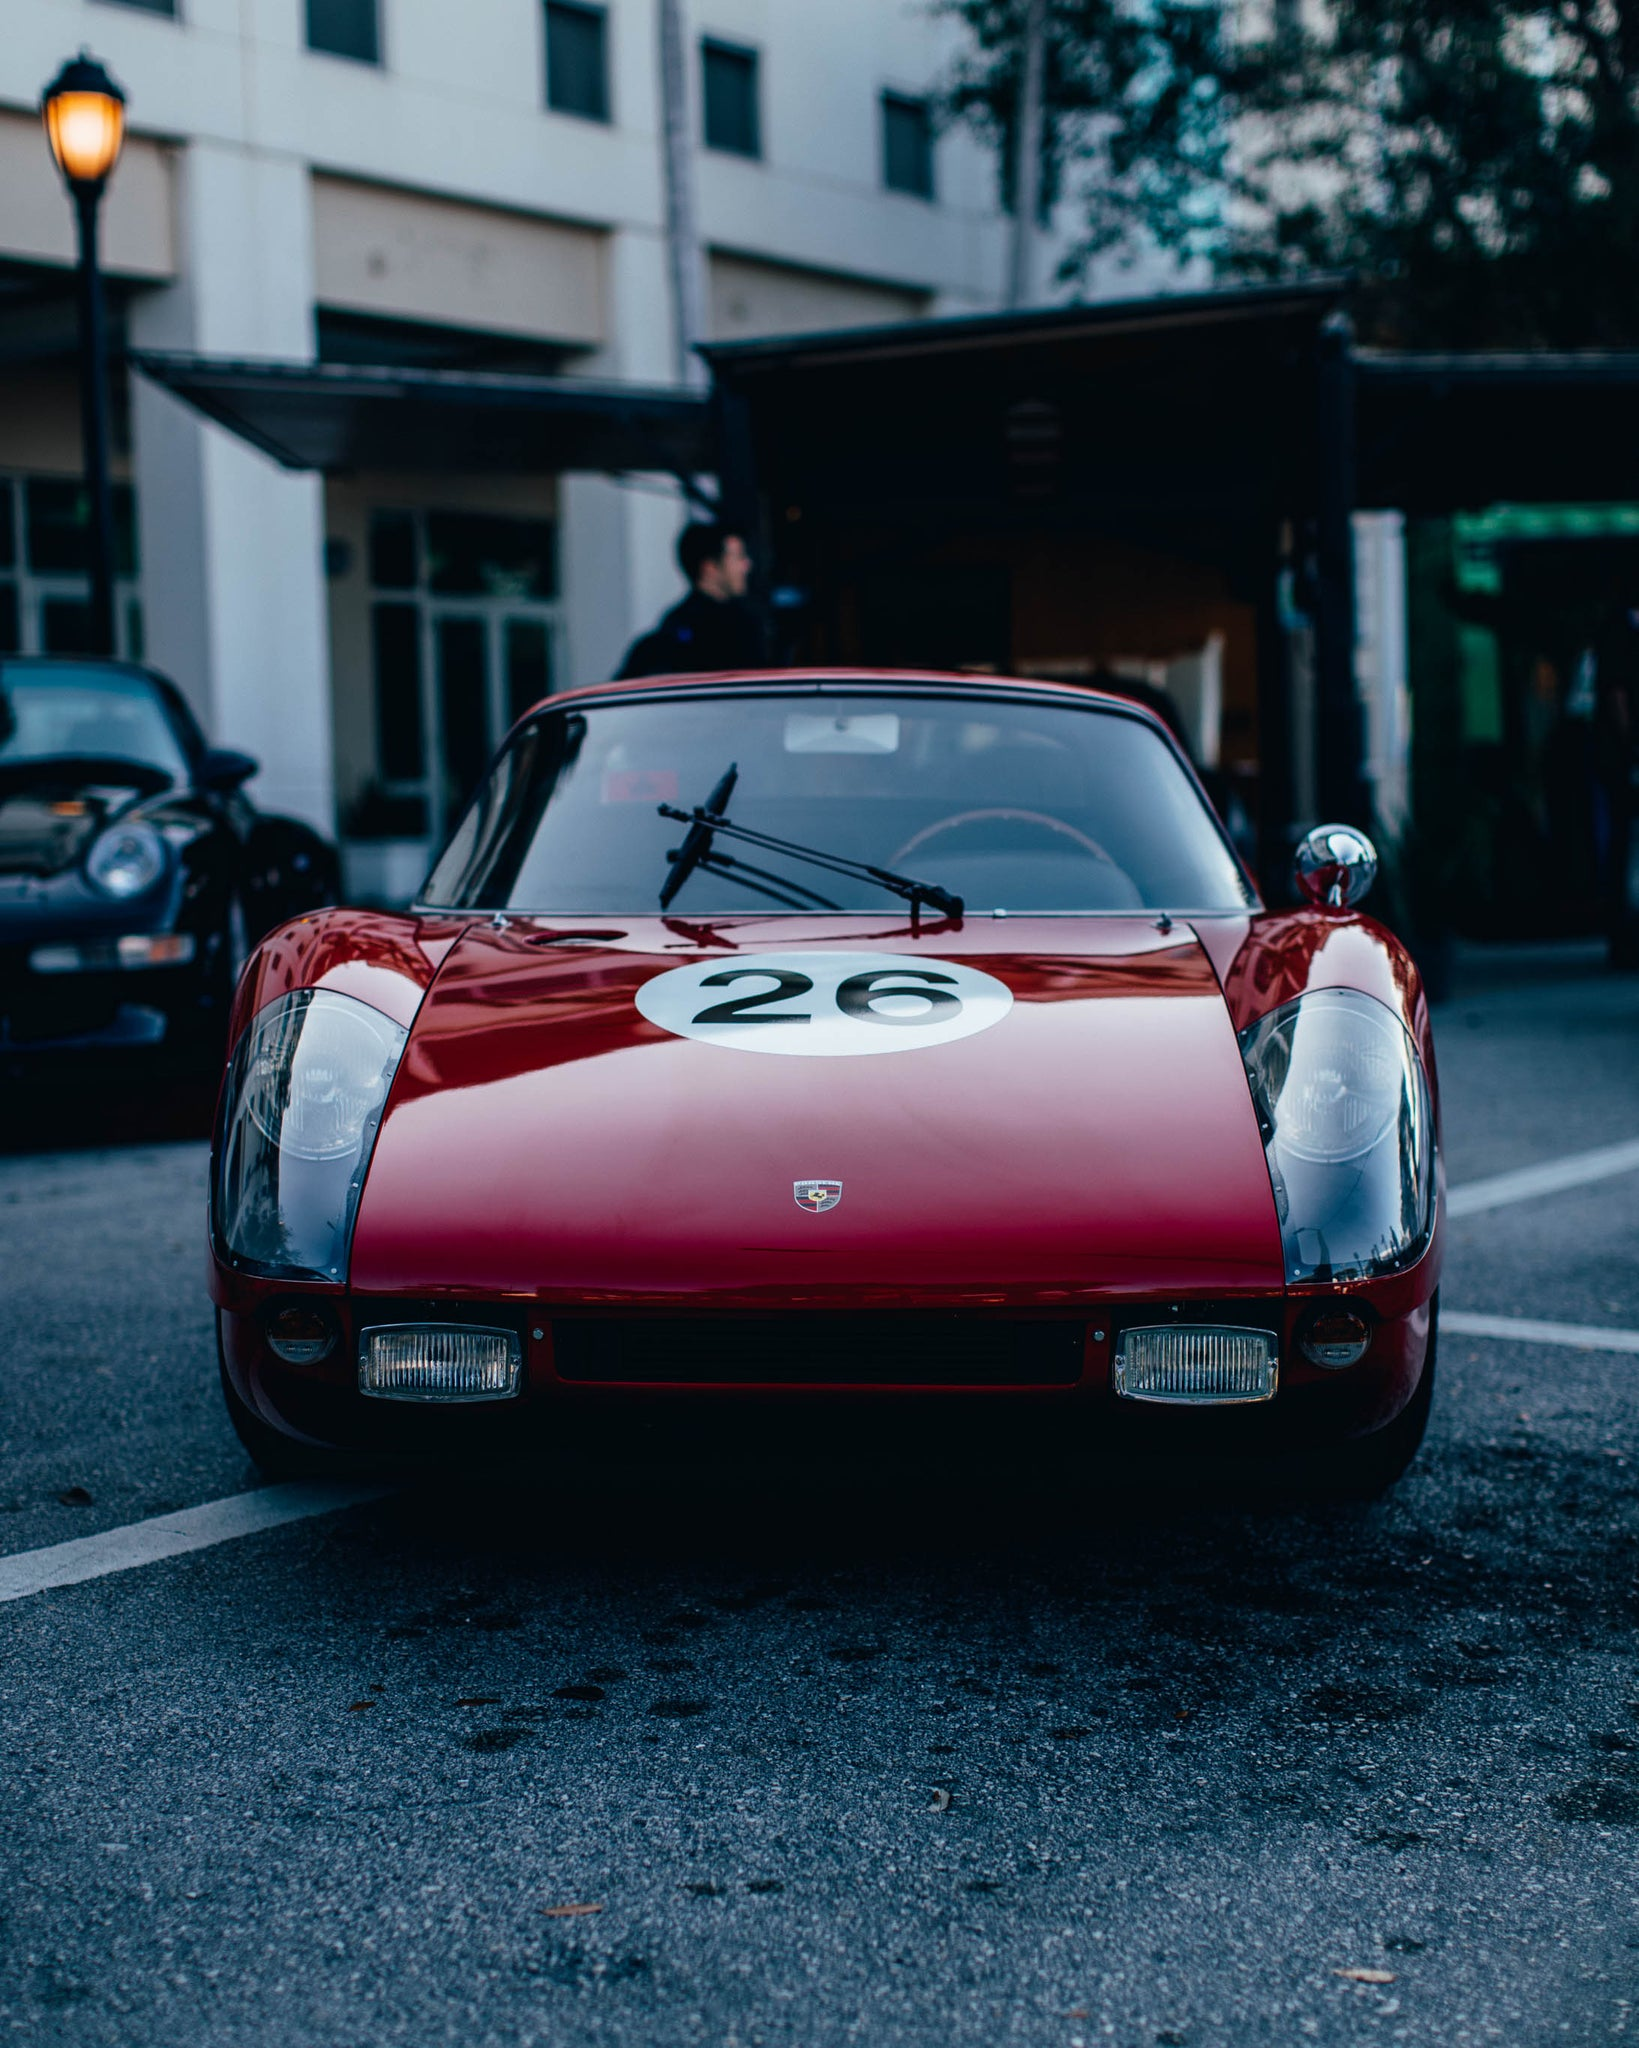 Porsche 904 Carrera GTS DRT 2020 shot by Peter C Reid